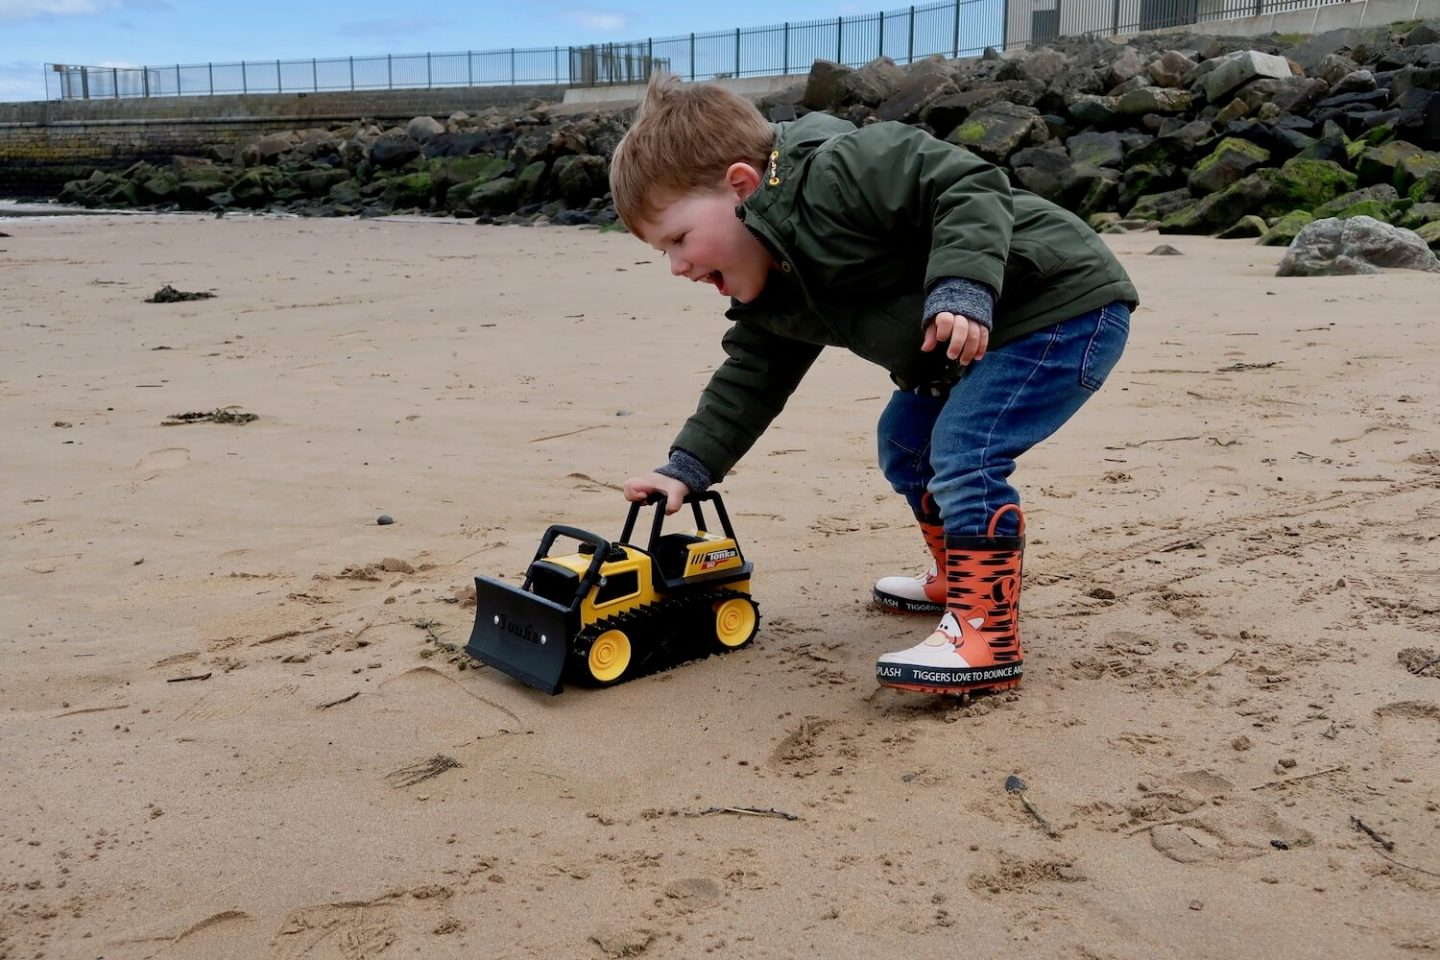 A young child pushing a large bulldozer toy on the beacj